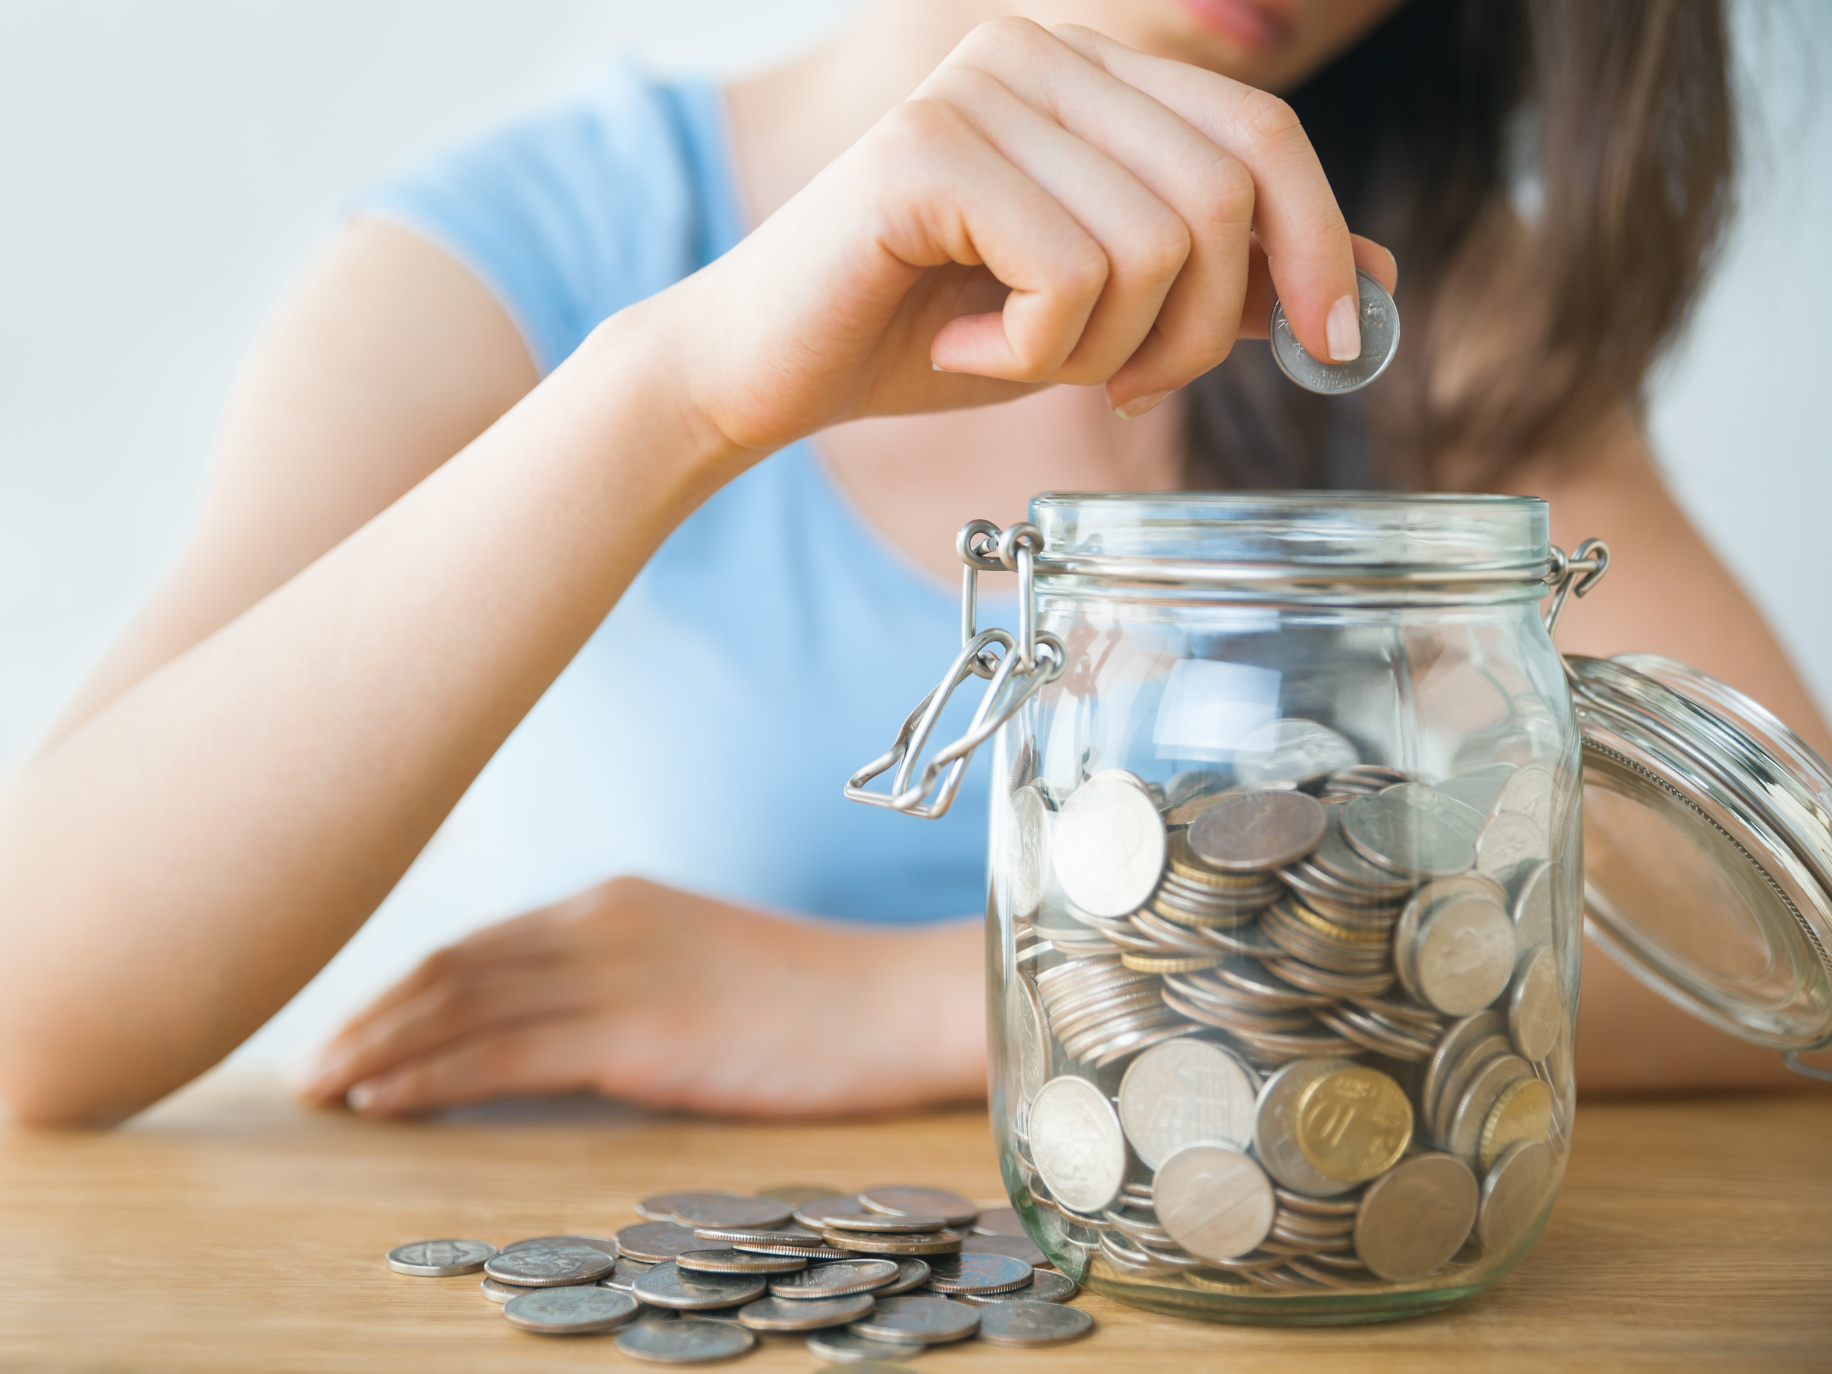 10 Top Tips to Save Money at Home